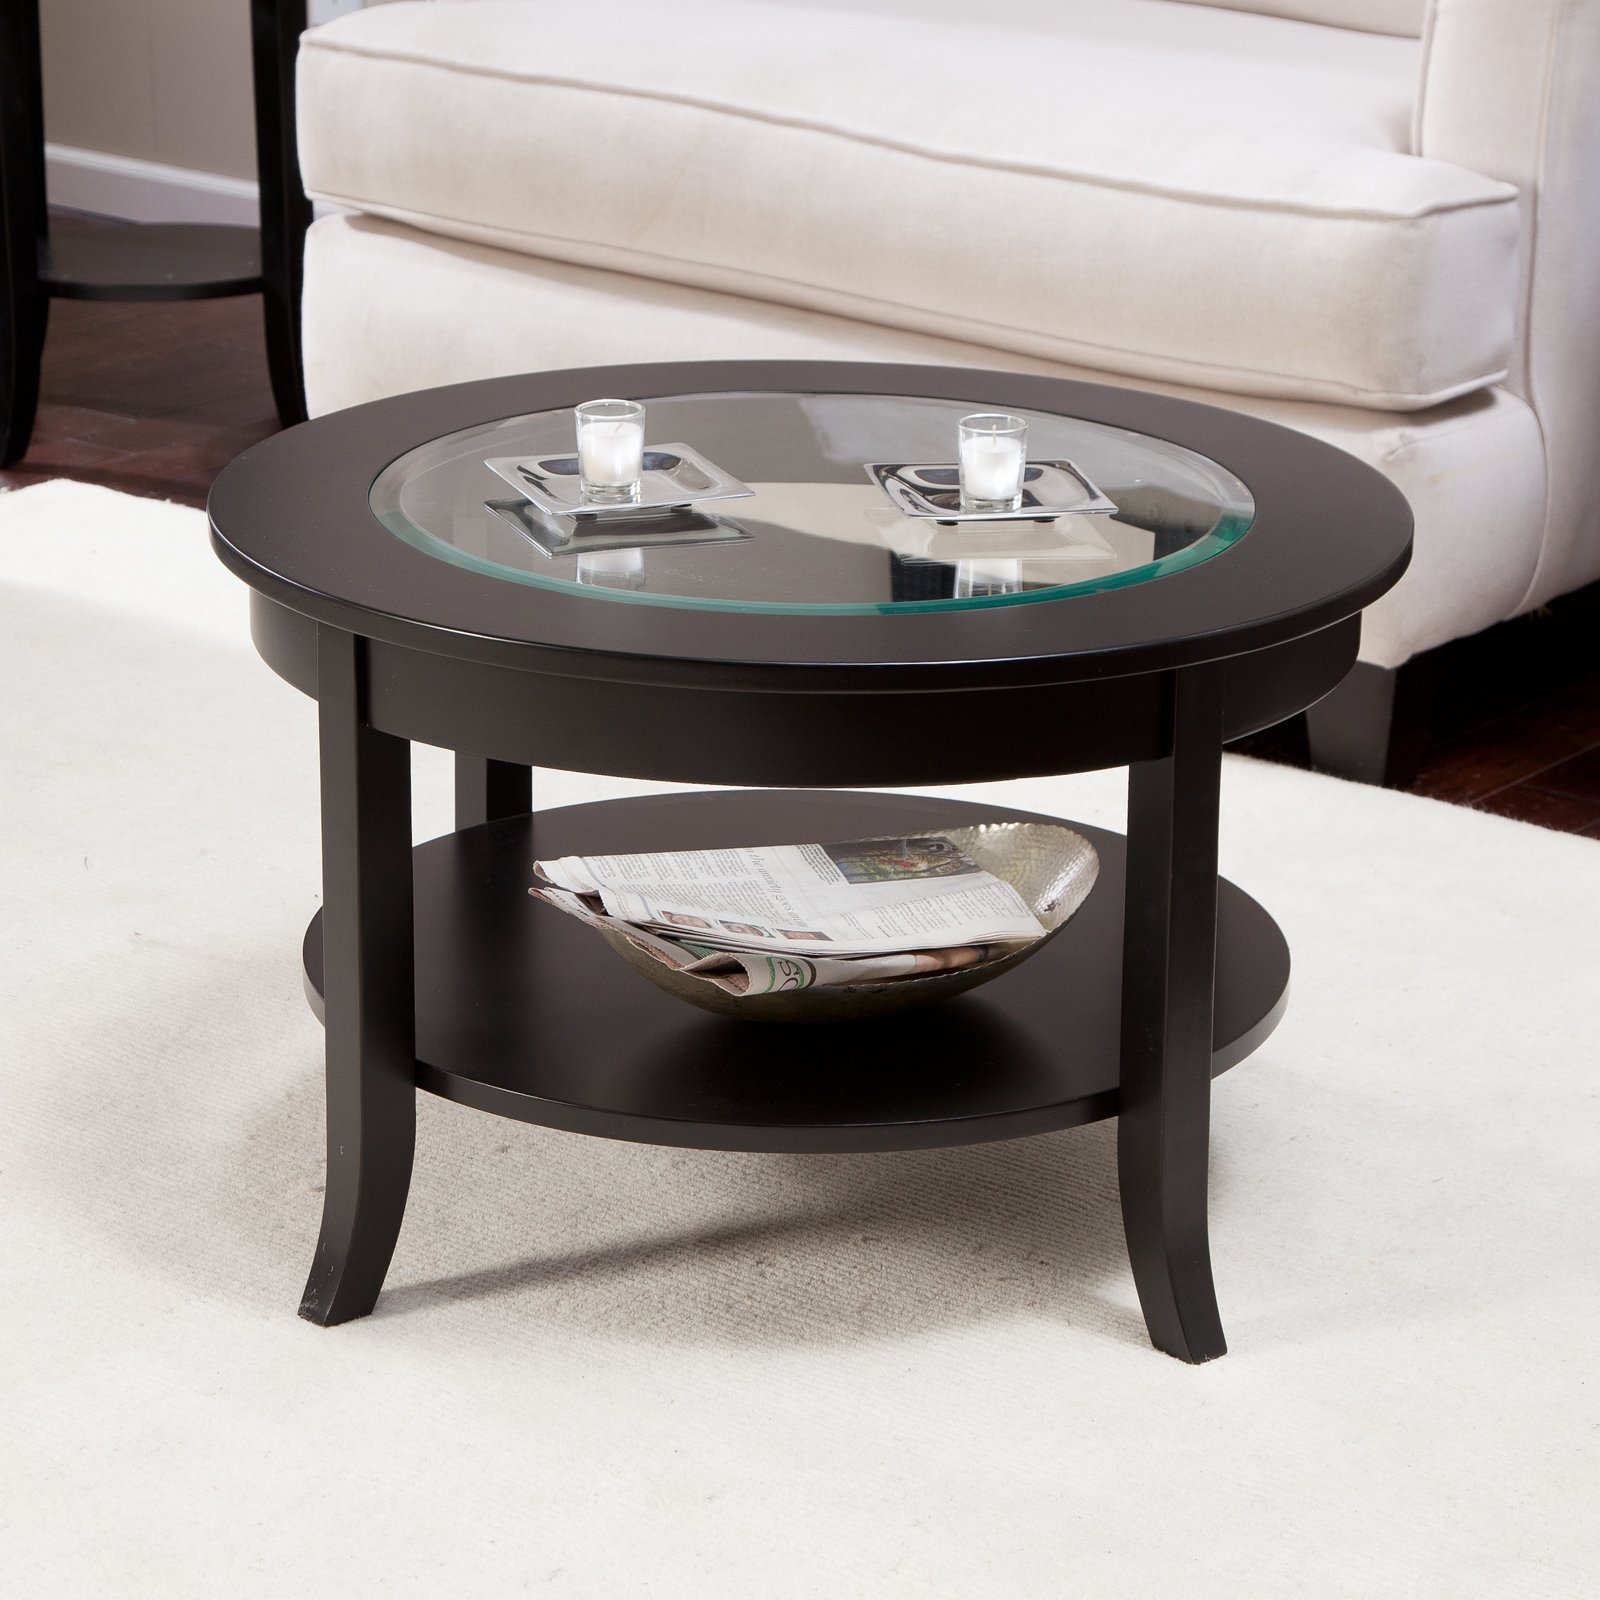 Small Round Coffee Tables Combine With Glass Small Round Coffee Tables Small Round Glass Coffee Table (Image 8 of 10)